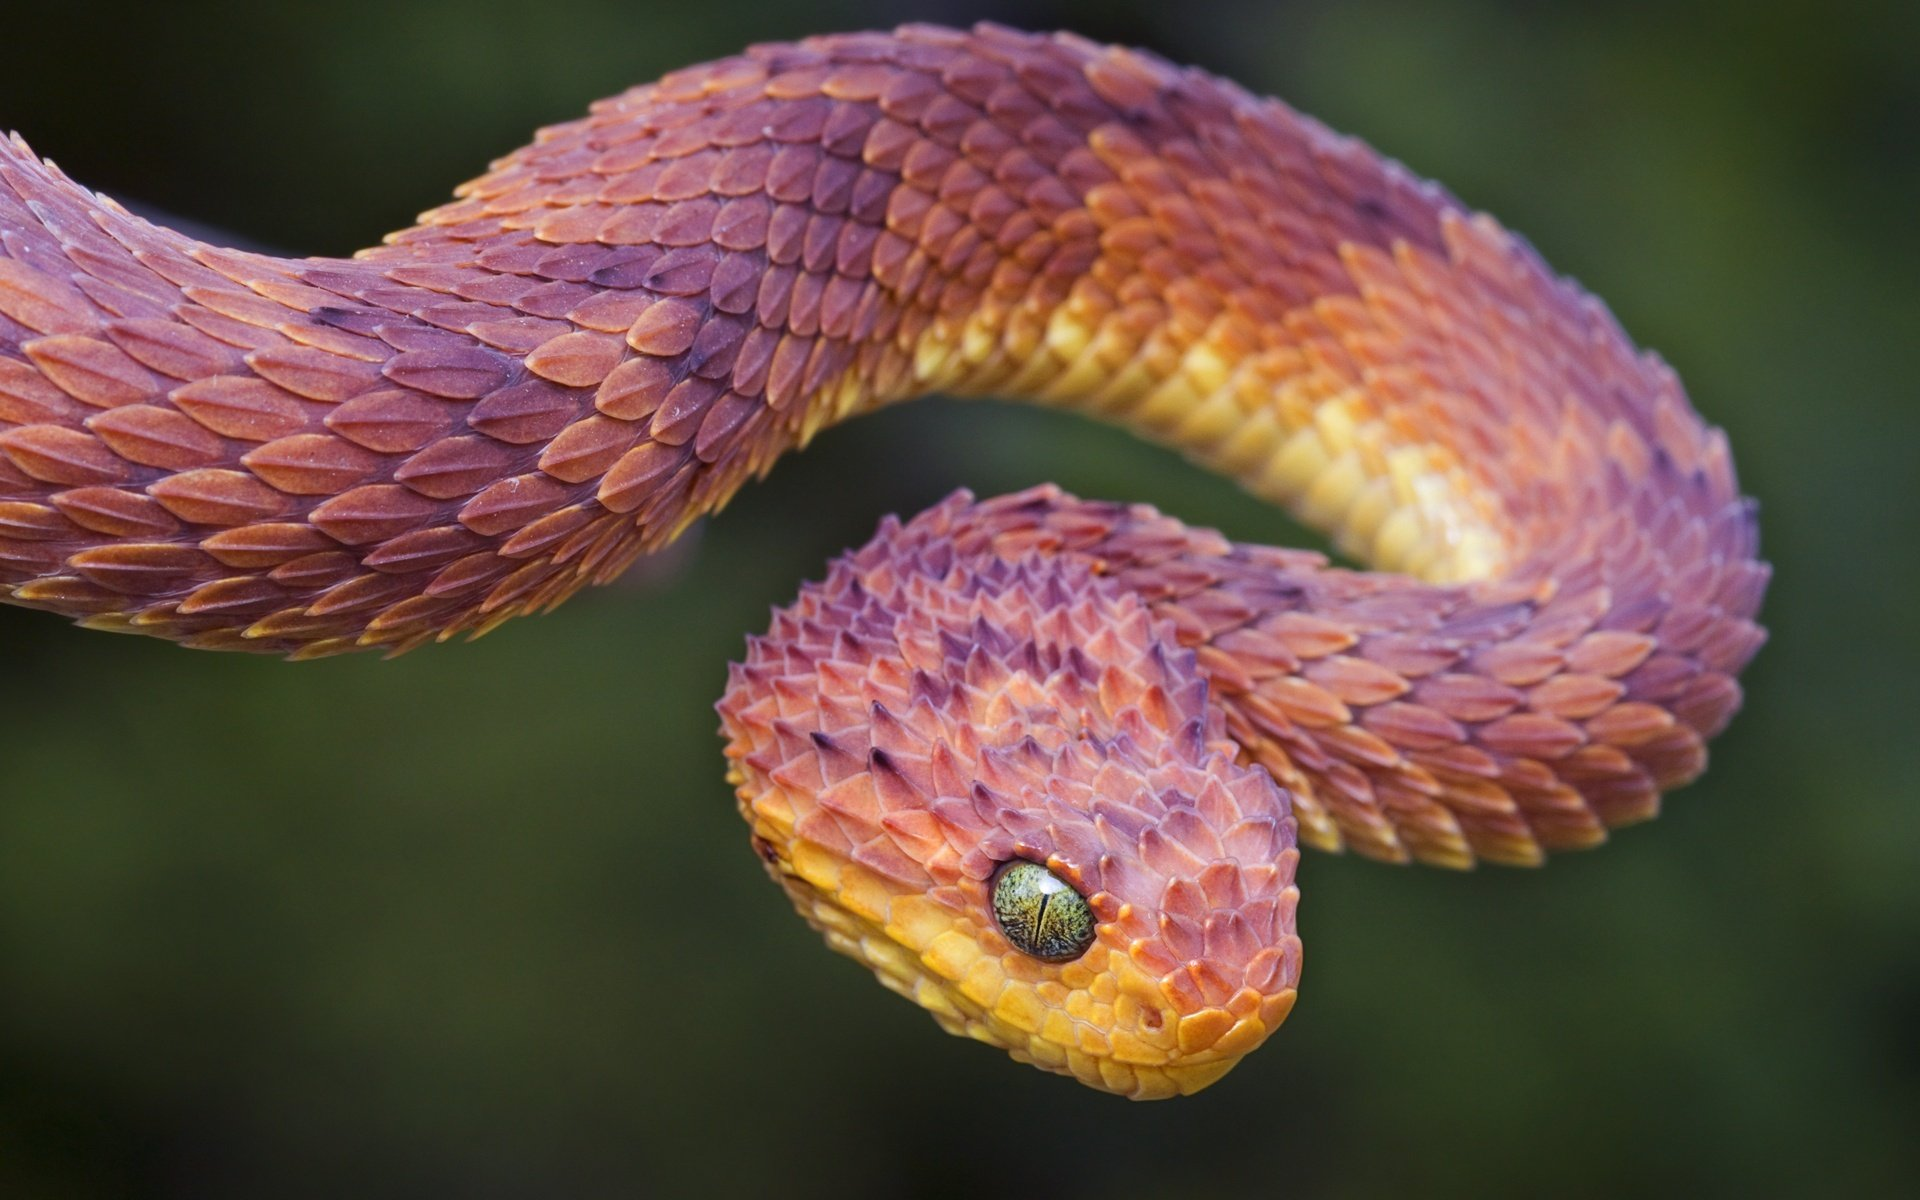 Most colorful animal in the world